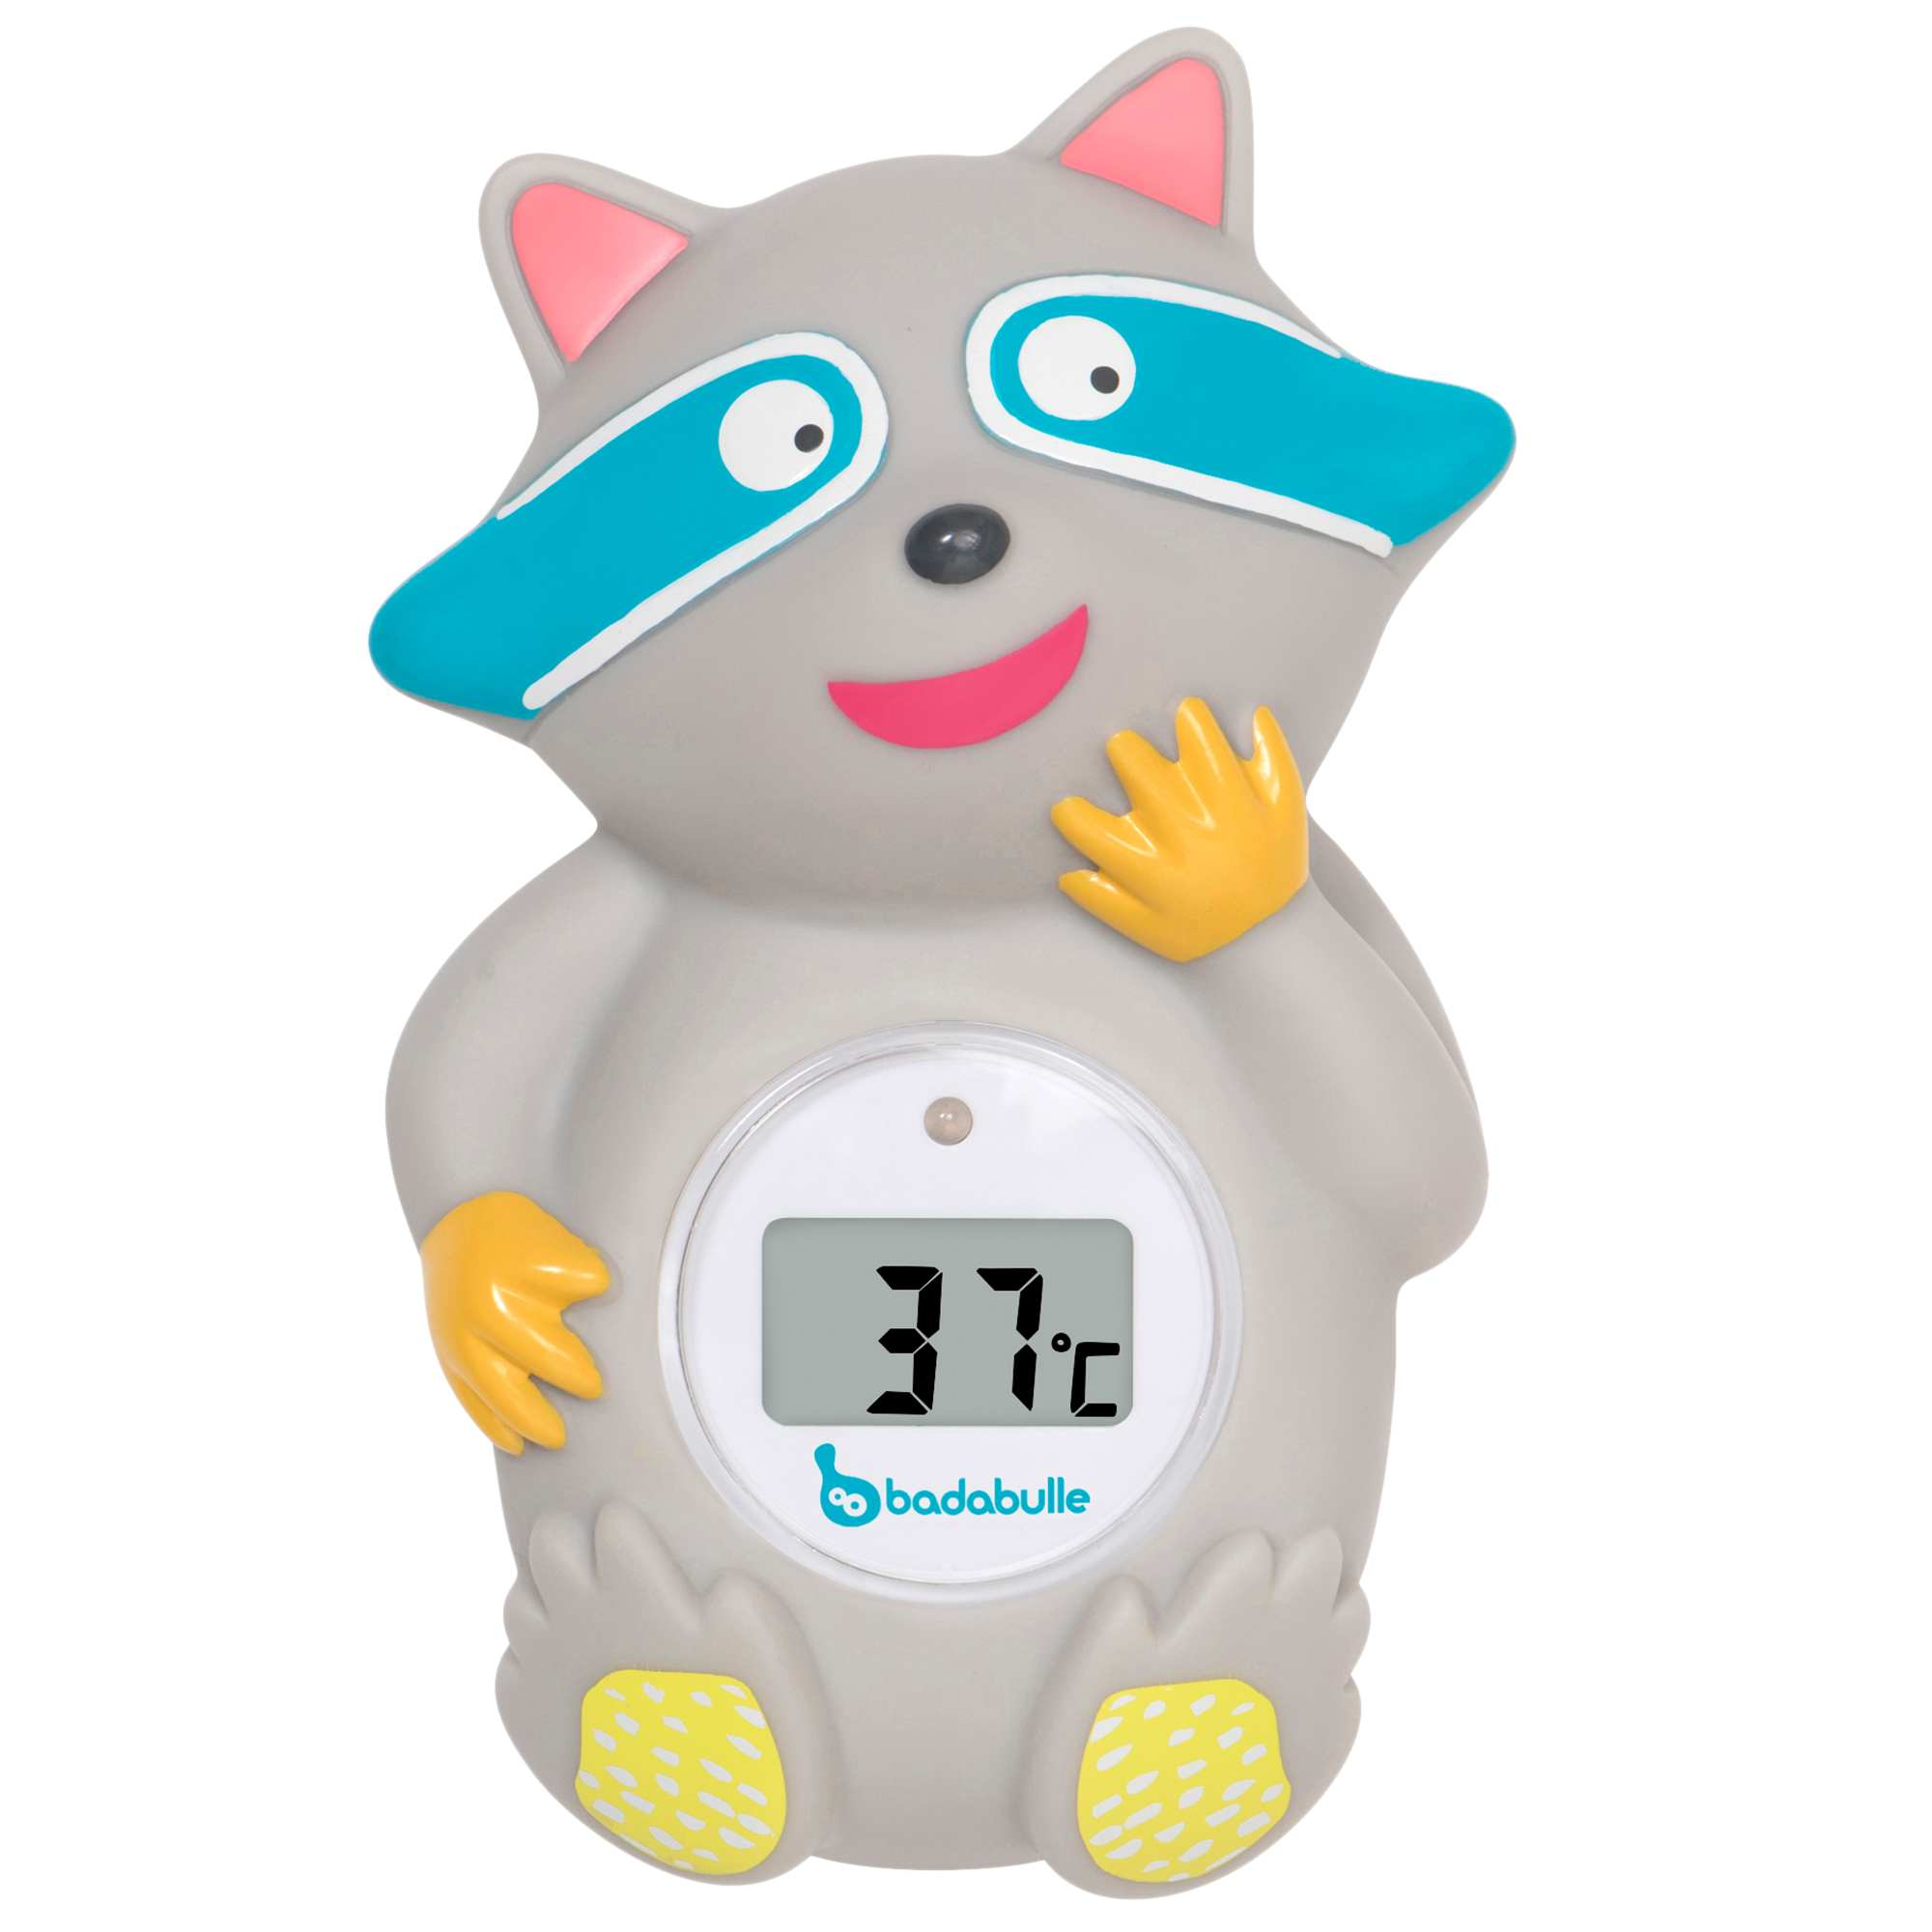 Thermom tre de bain digital 39 badabulle 39 b b fille kiabi for Thermometre de chambre bebe